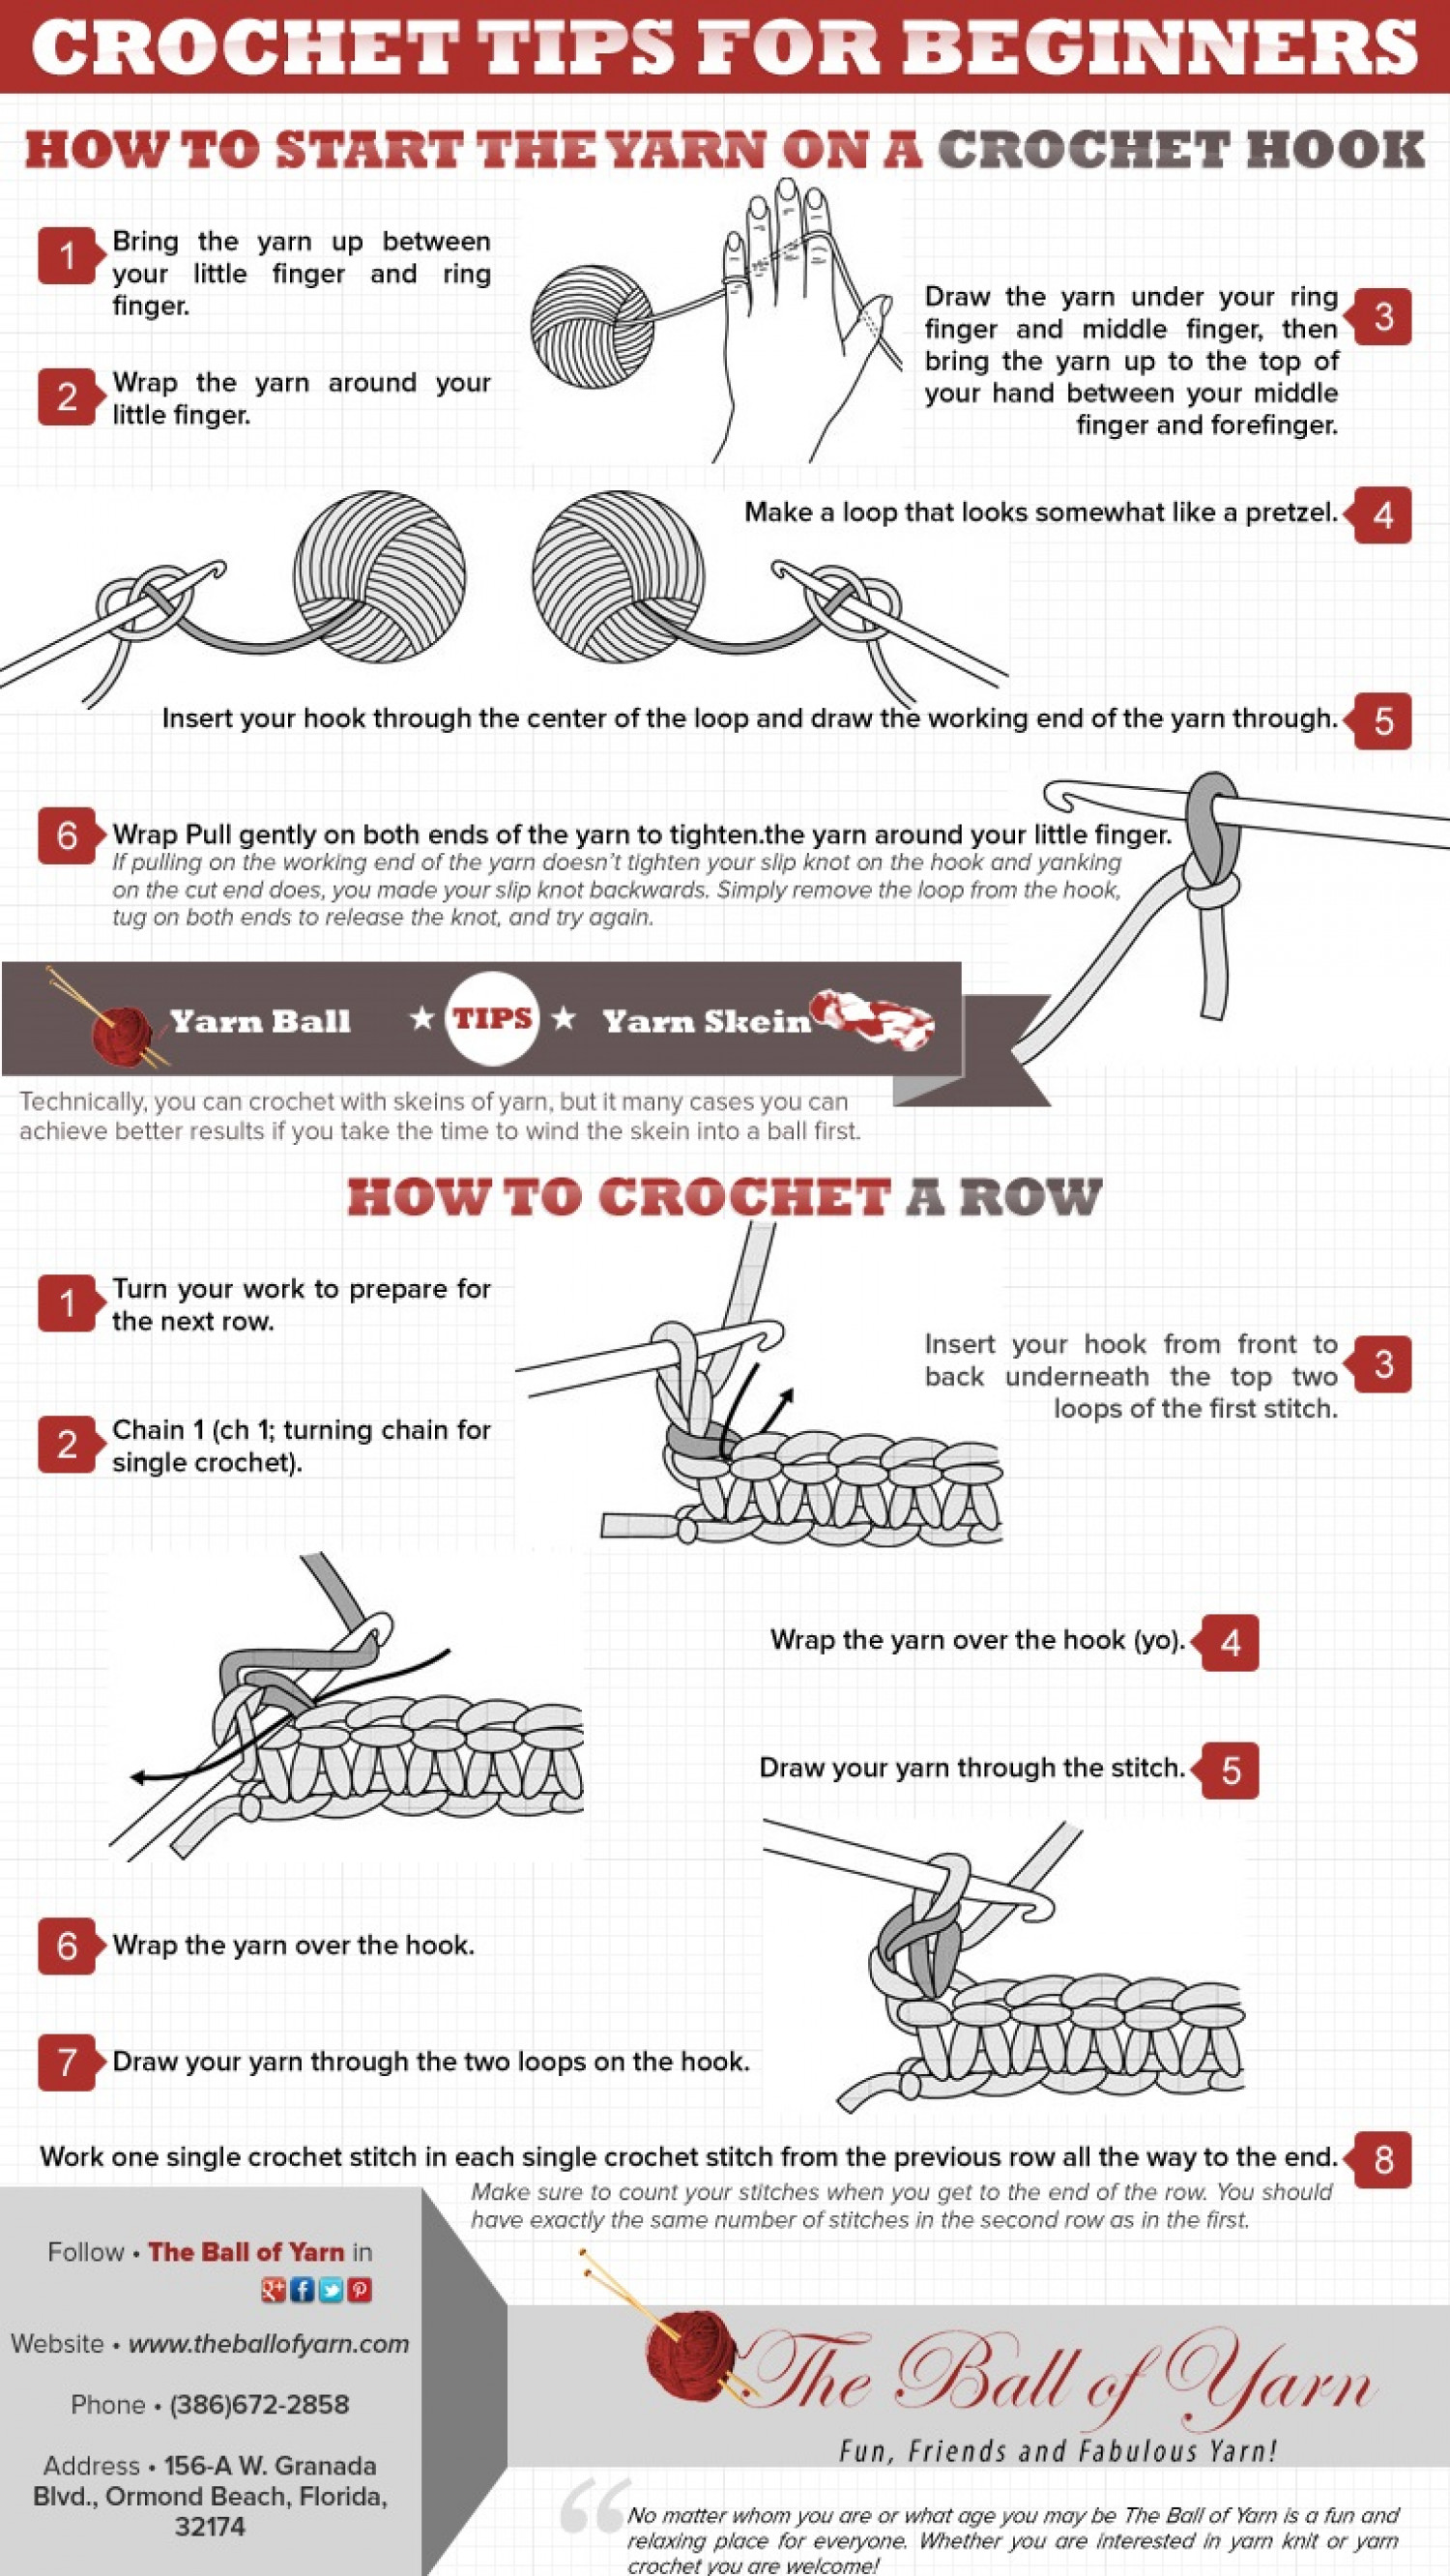 Crochet Beginner : Crochet Tips for Beginners Infographic